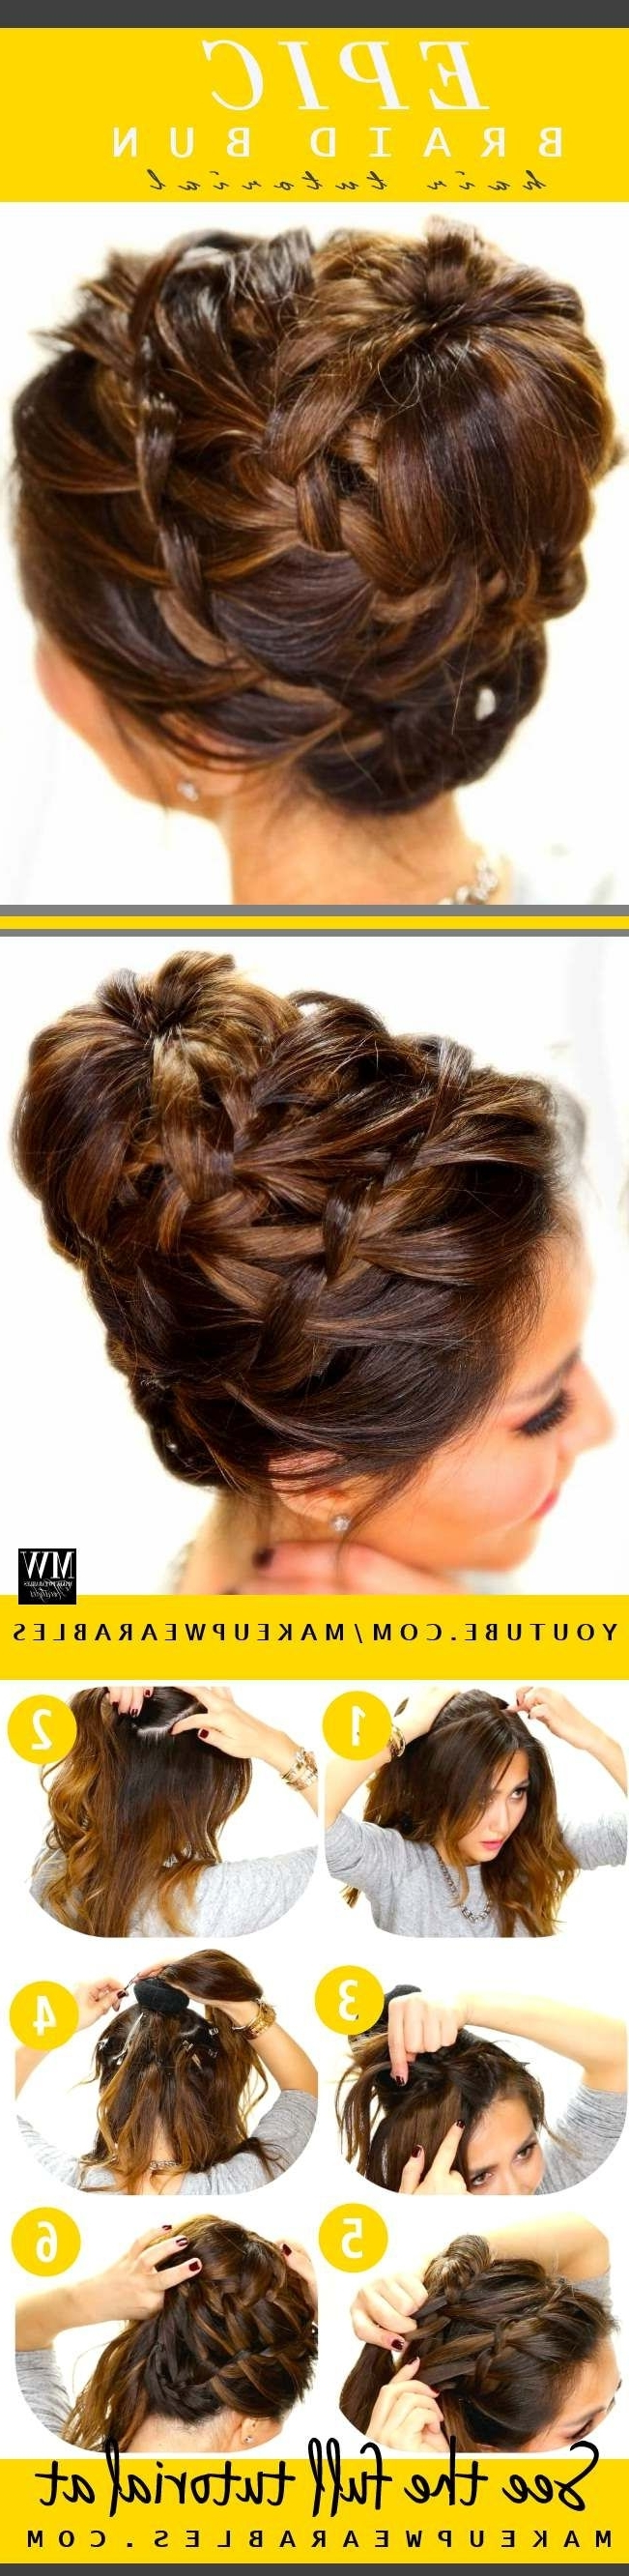 73 Best Hair Images On Pinterest | Braids, Hair Dos And Hairdos Pertaining To Teenage Updos For Long Hair (View 6 of 15)